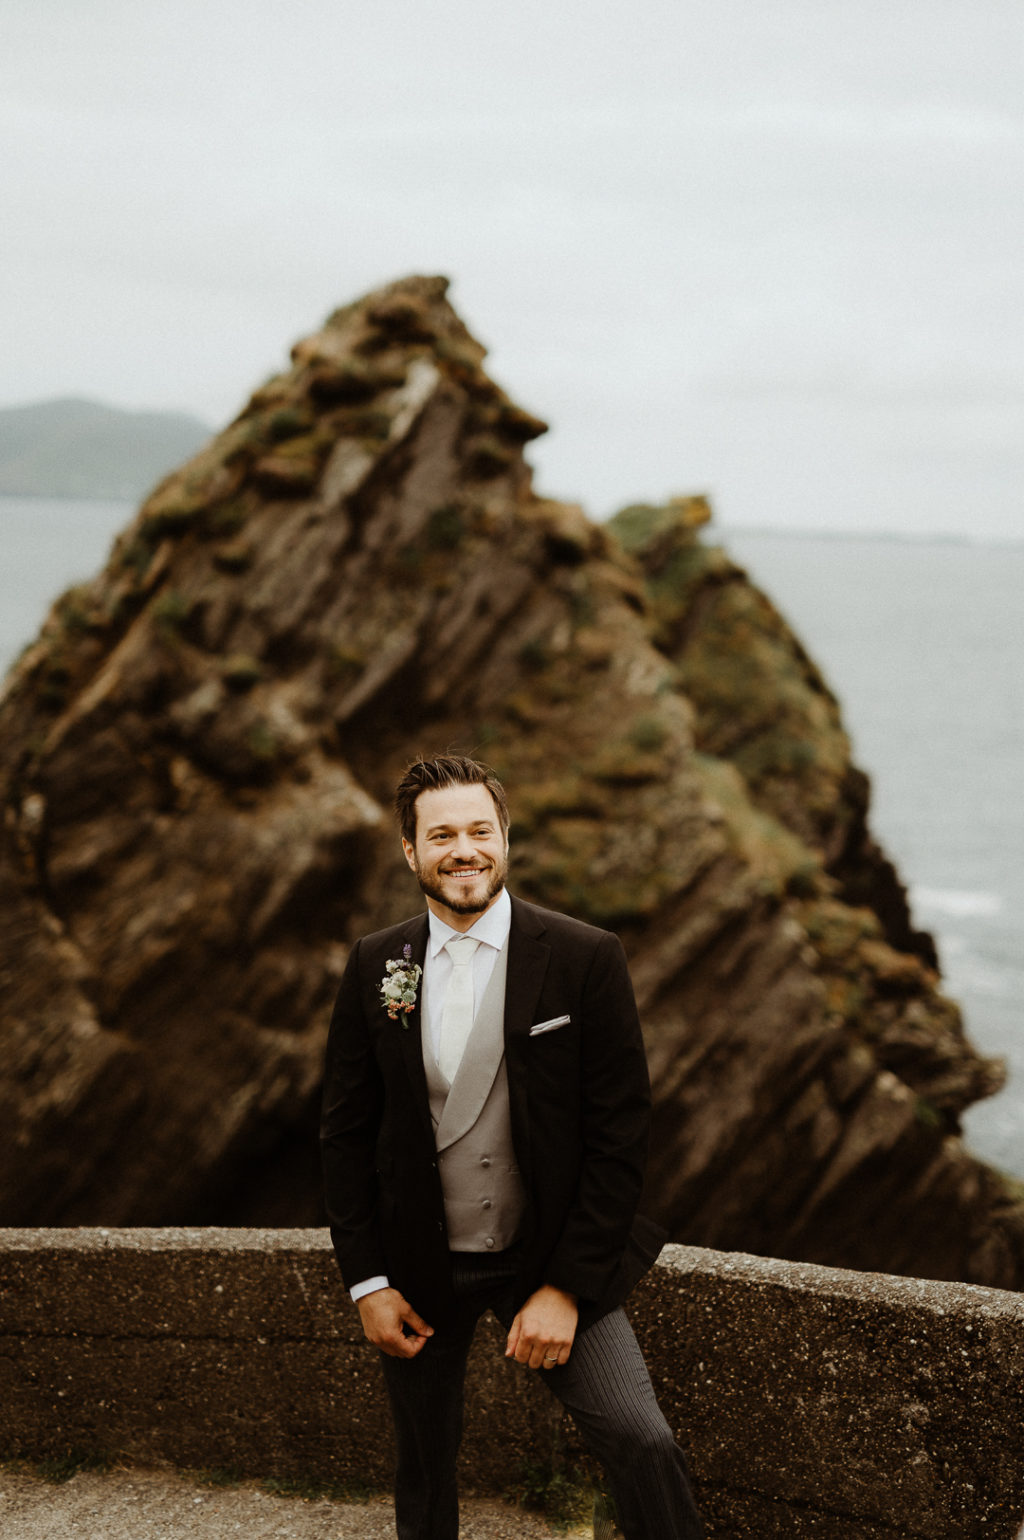 a groom's look with an awesome floral boutonniere